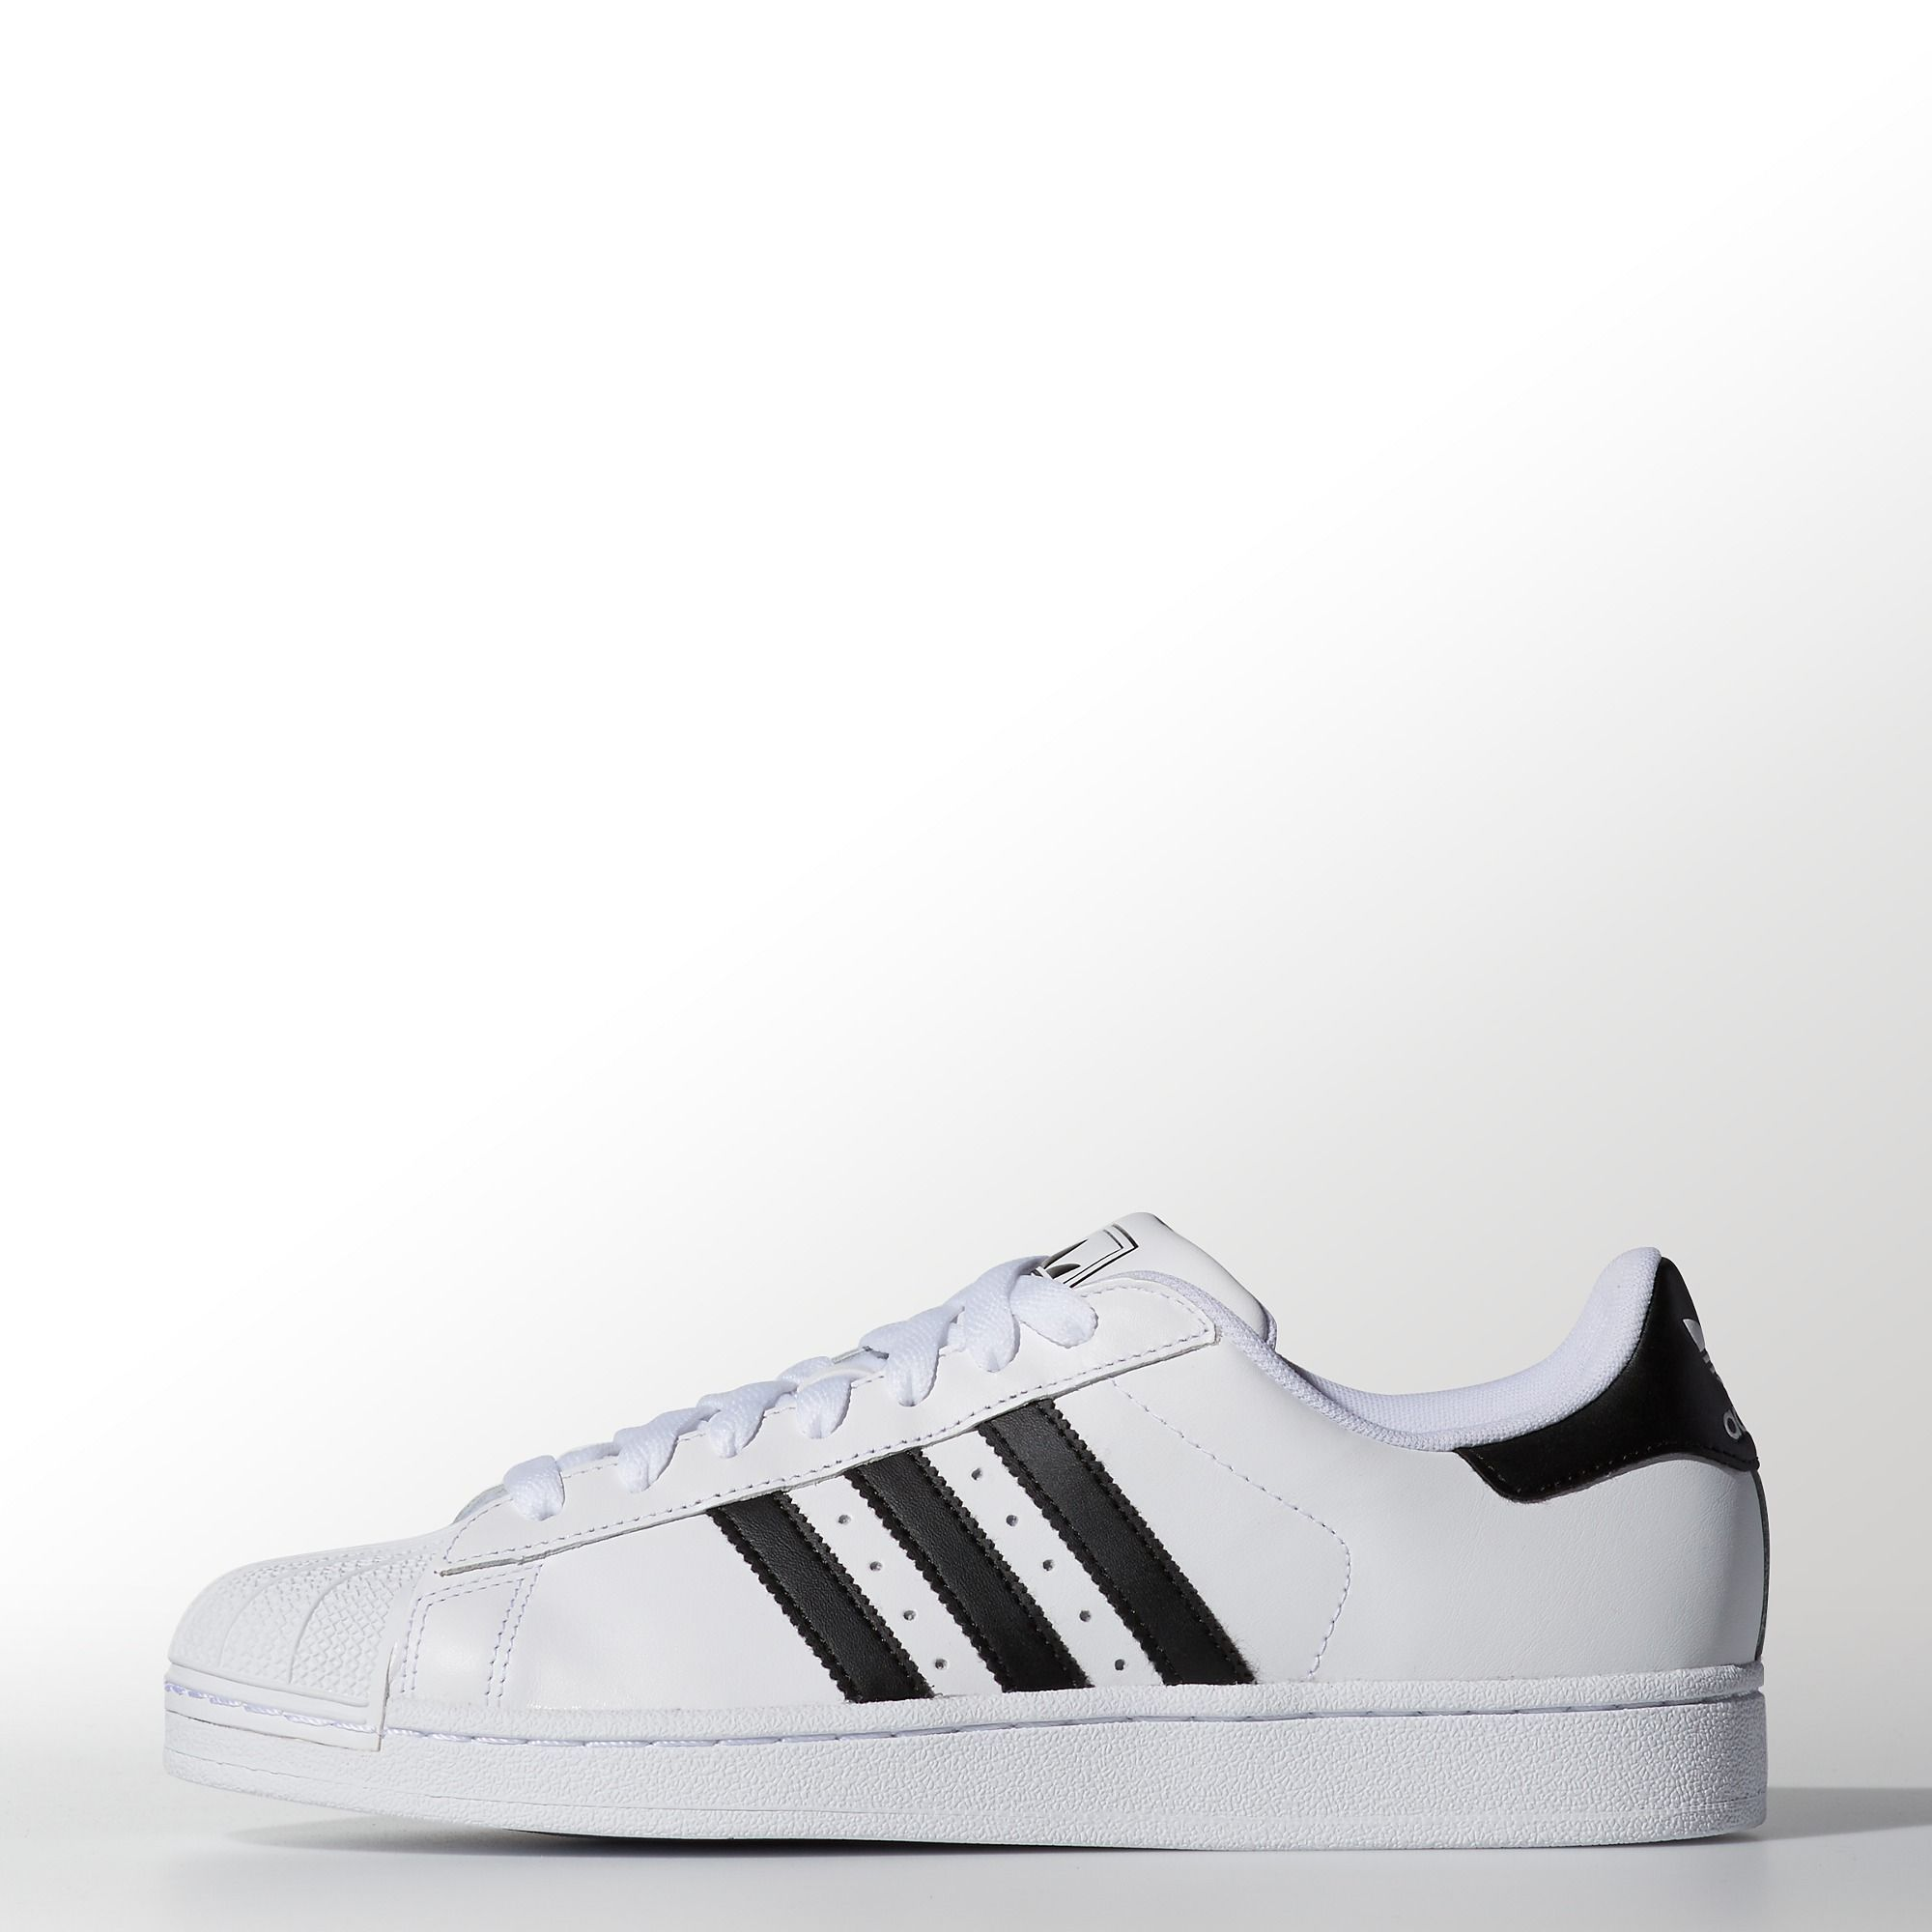 Still stepping forward with their iconic shell toe, these men\u0027s adidas  Originals Superstar shoes now have an eco-friendly full grain leather  upper, ...